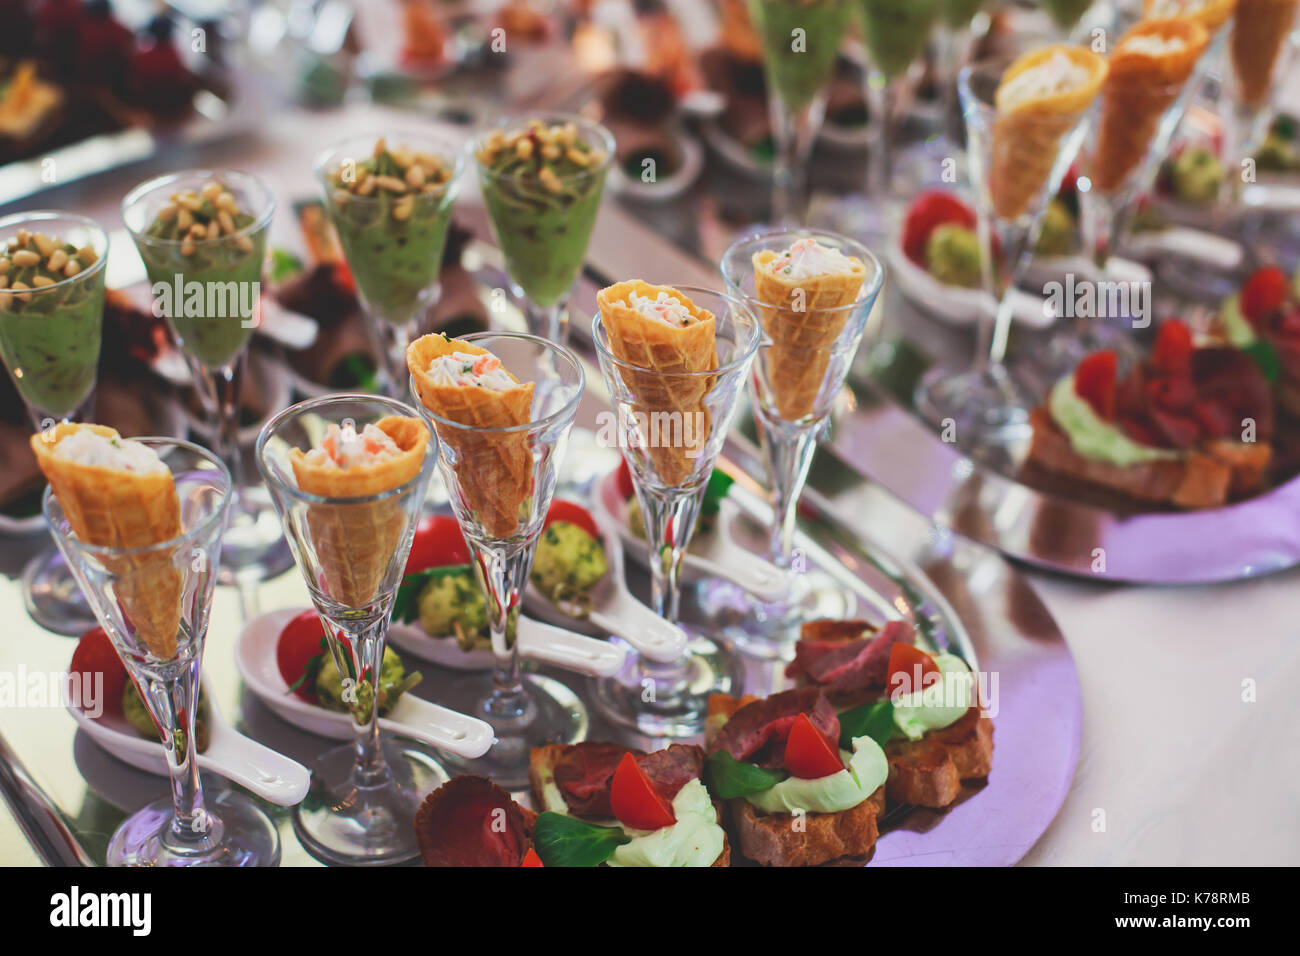 Beautifully Decorated Catering Banquet Table With Different